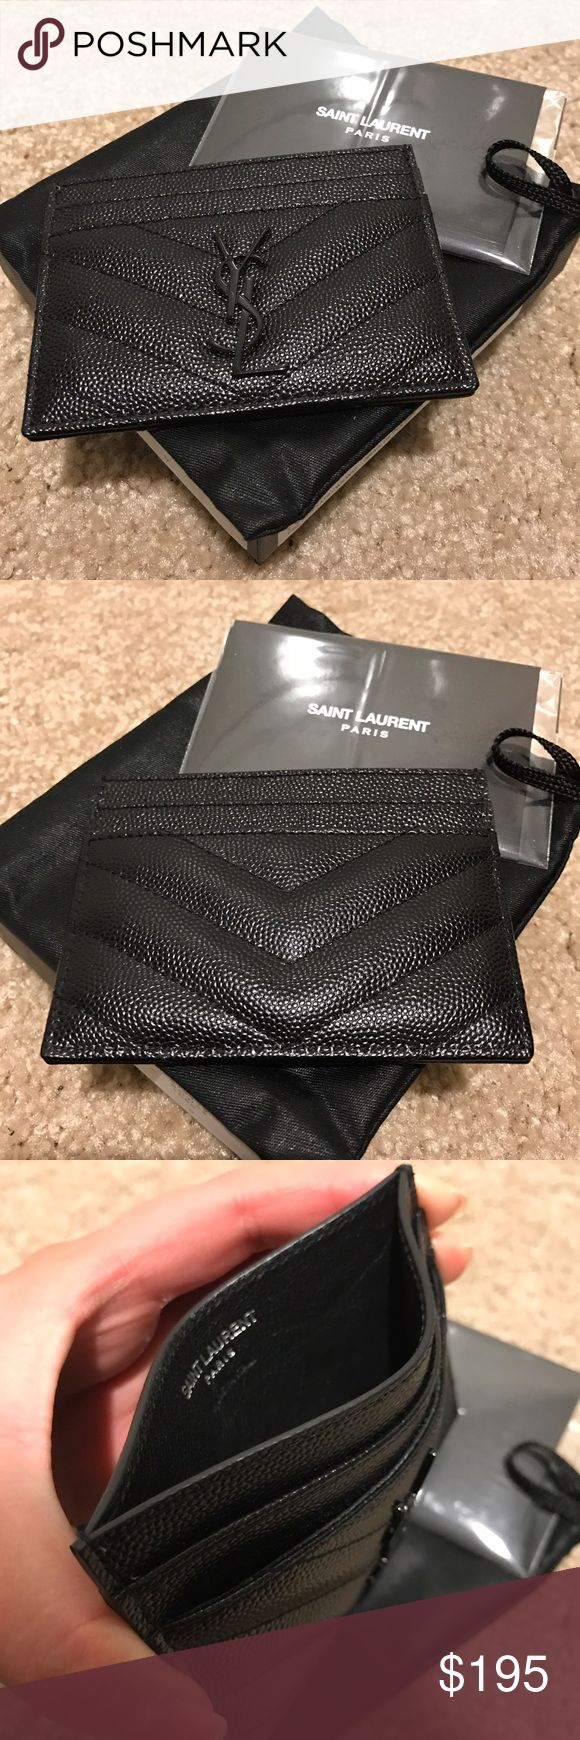 YSL Card Holder Rare YSL Card Holder/Wallet. Gently Used. Almost New. Black with Black Hardware. Comes with Original Box, Dustbag and Tags. Yves Saint Laurent Accessories Key & Card Holders